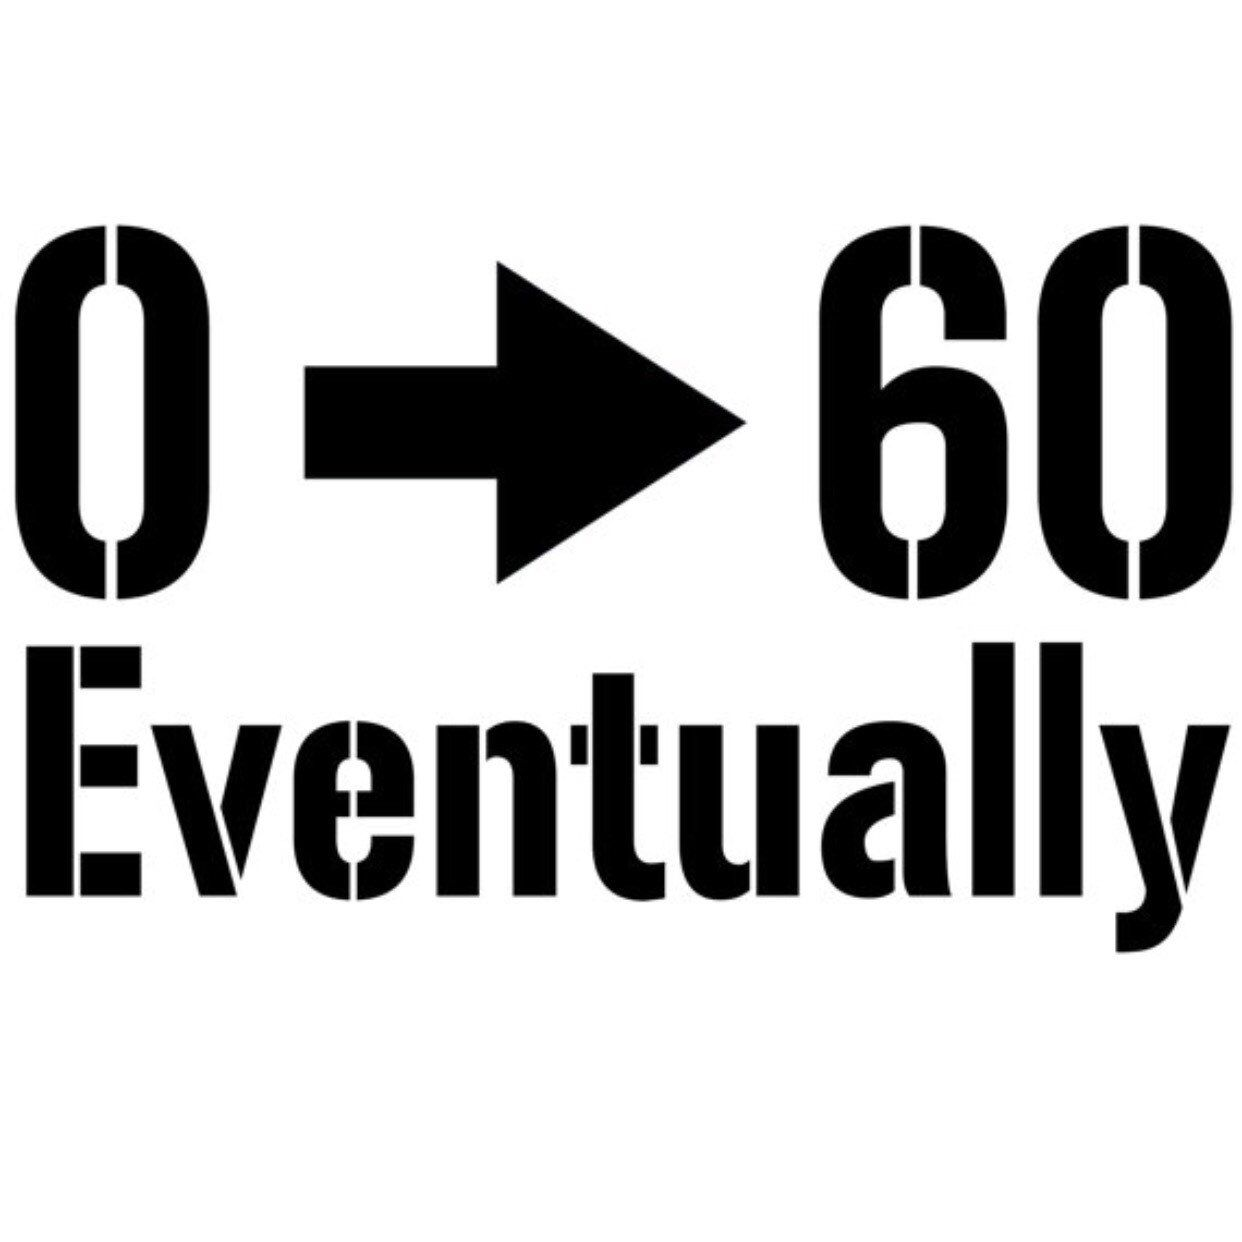 0 60 Eventually Car Decal Funny Stickers Racing Phrases Vinyl Decals Funny Stickers Funny Car Decals Car Decals [ 1242 x 1242 Pixel ]